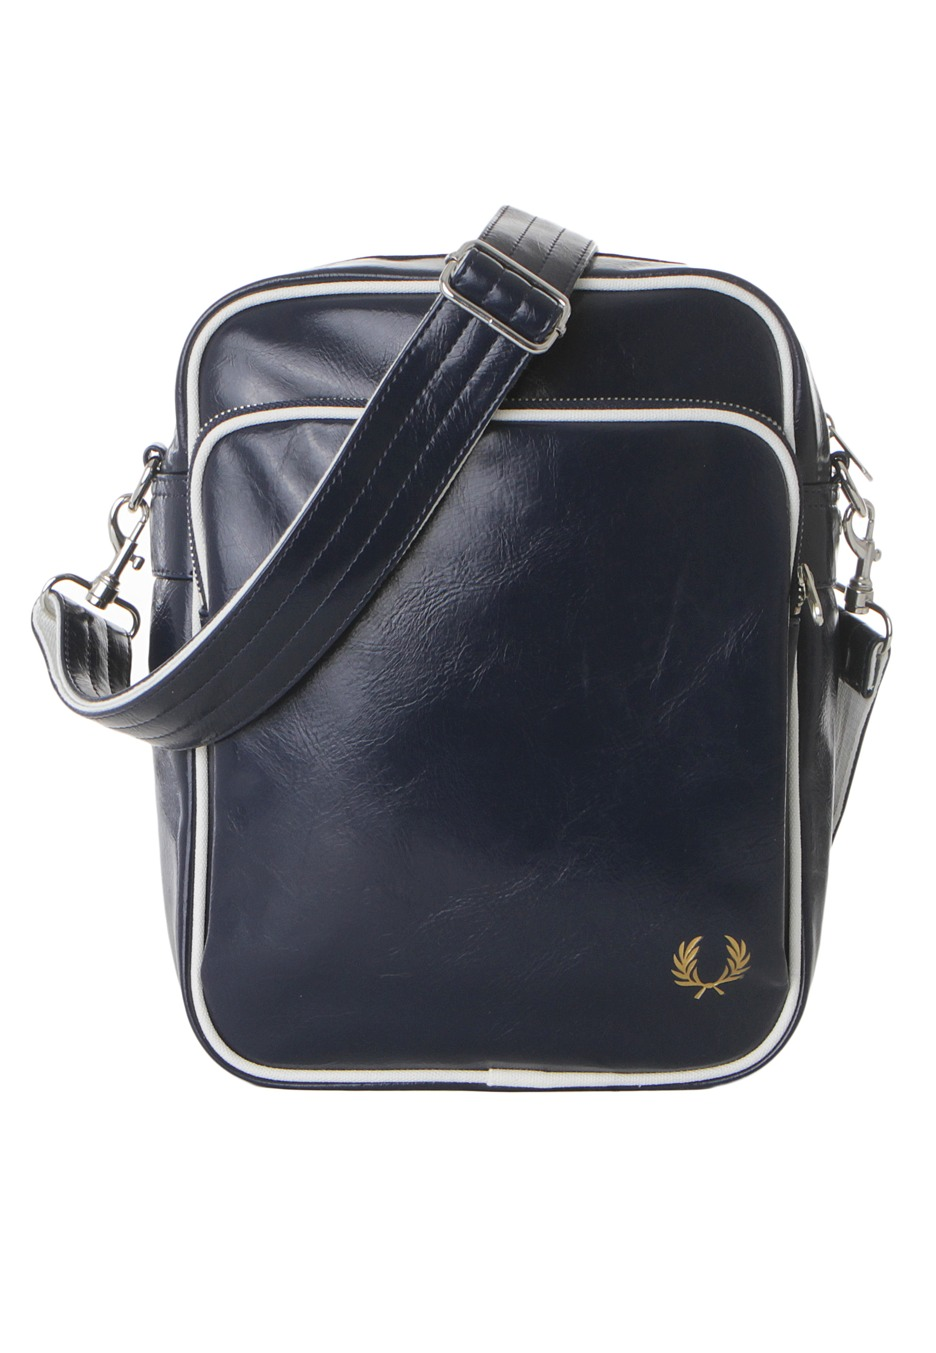 Fred Perry - Classic Side Navy White - Bag - Streetwear Shop -  Impericon.com Worldwide 235c9213801ee